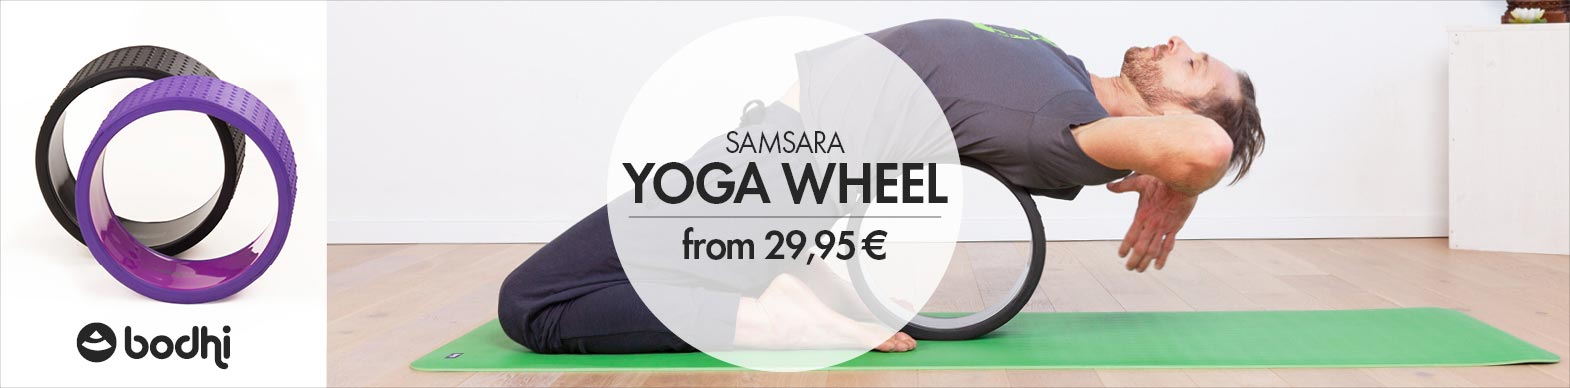 Yoga Wheels - Samsara from bodhi